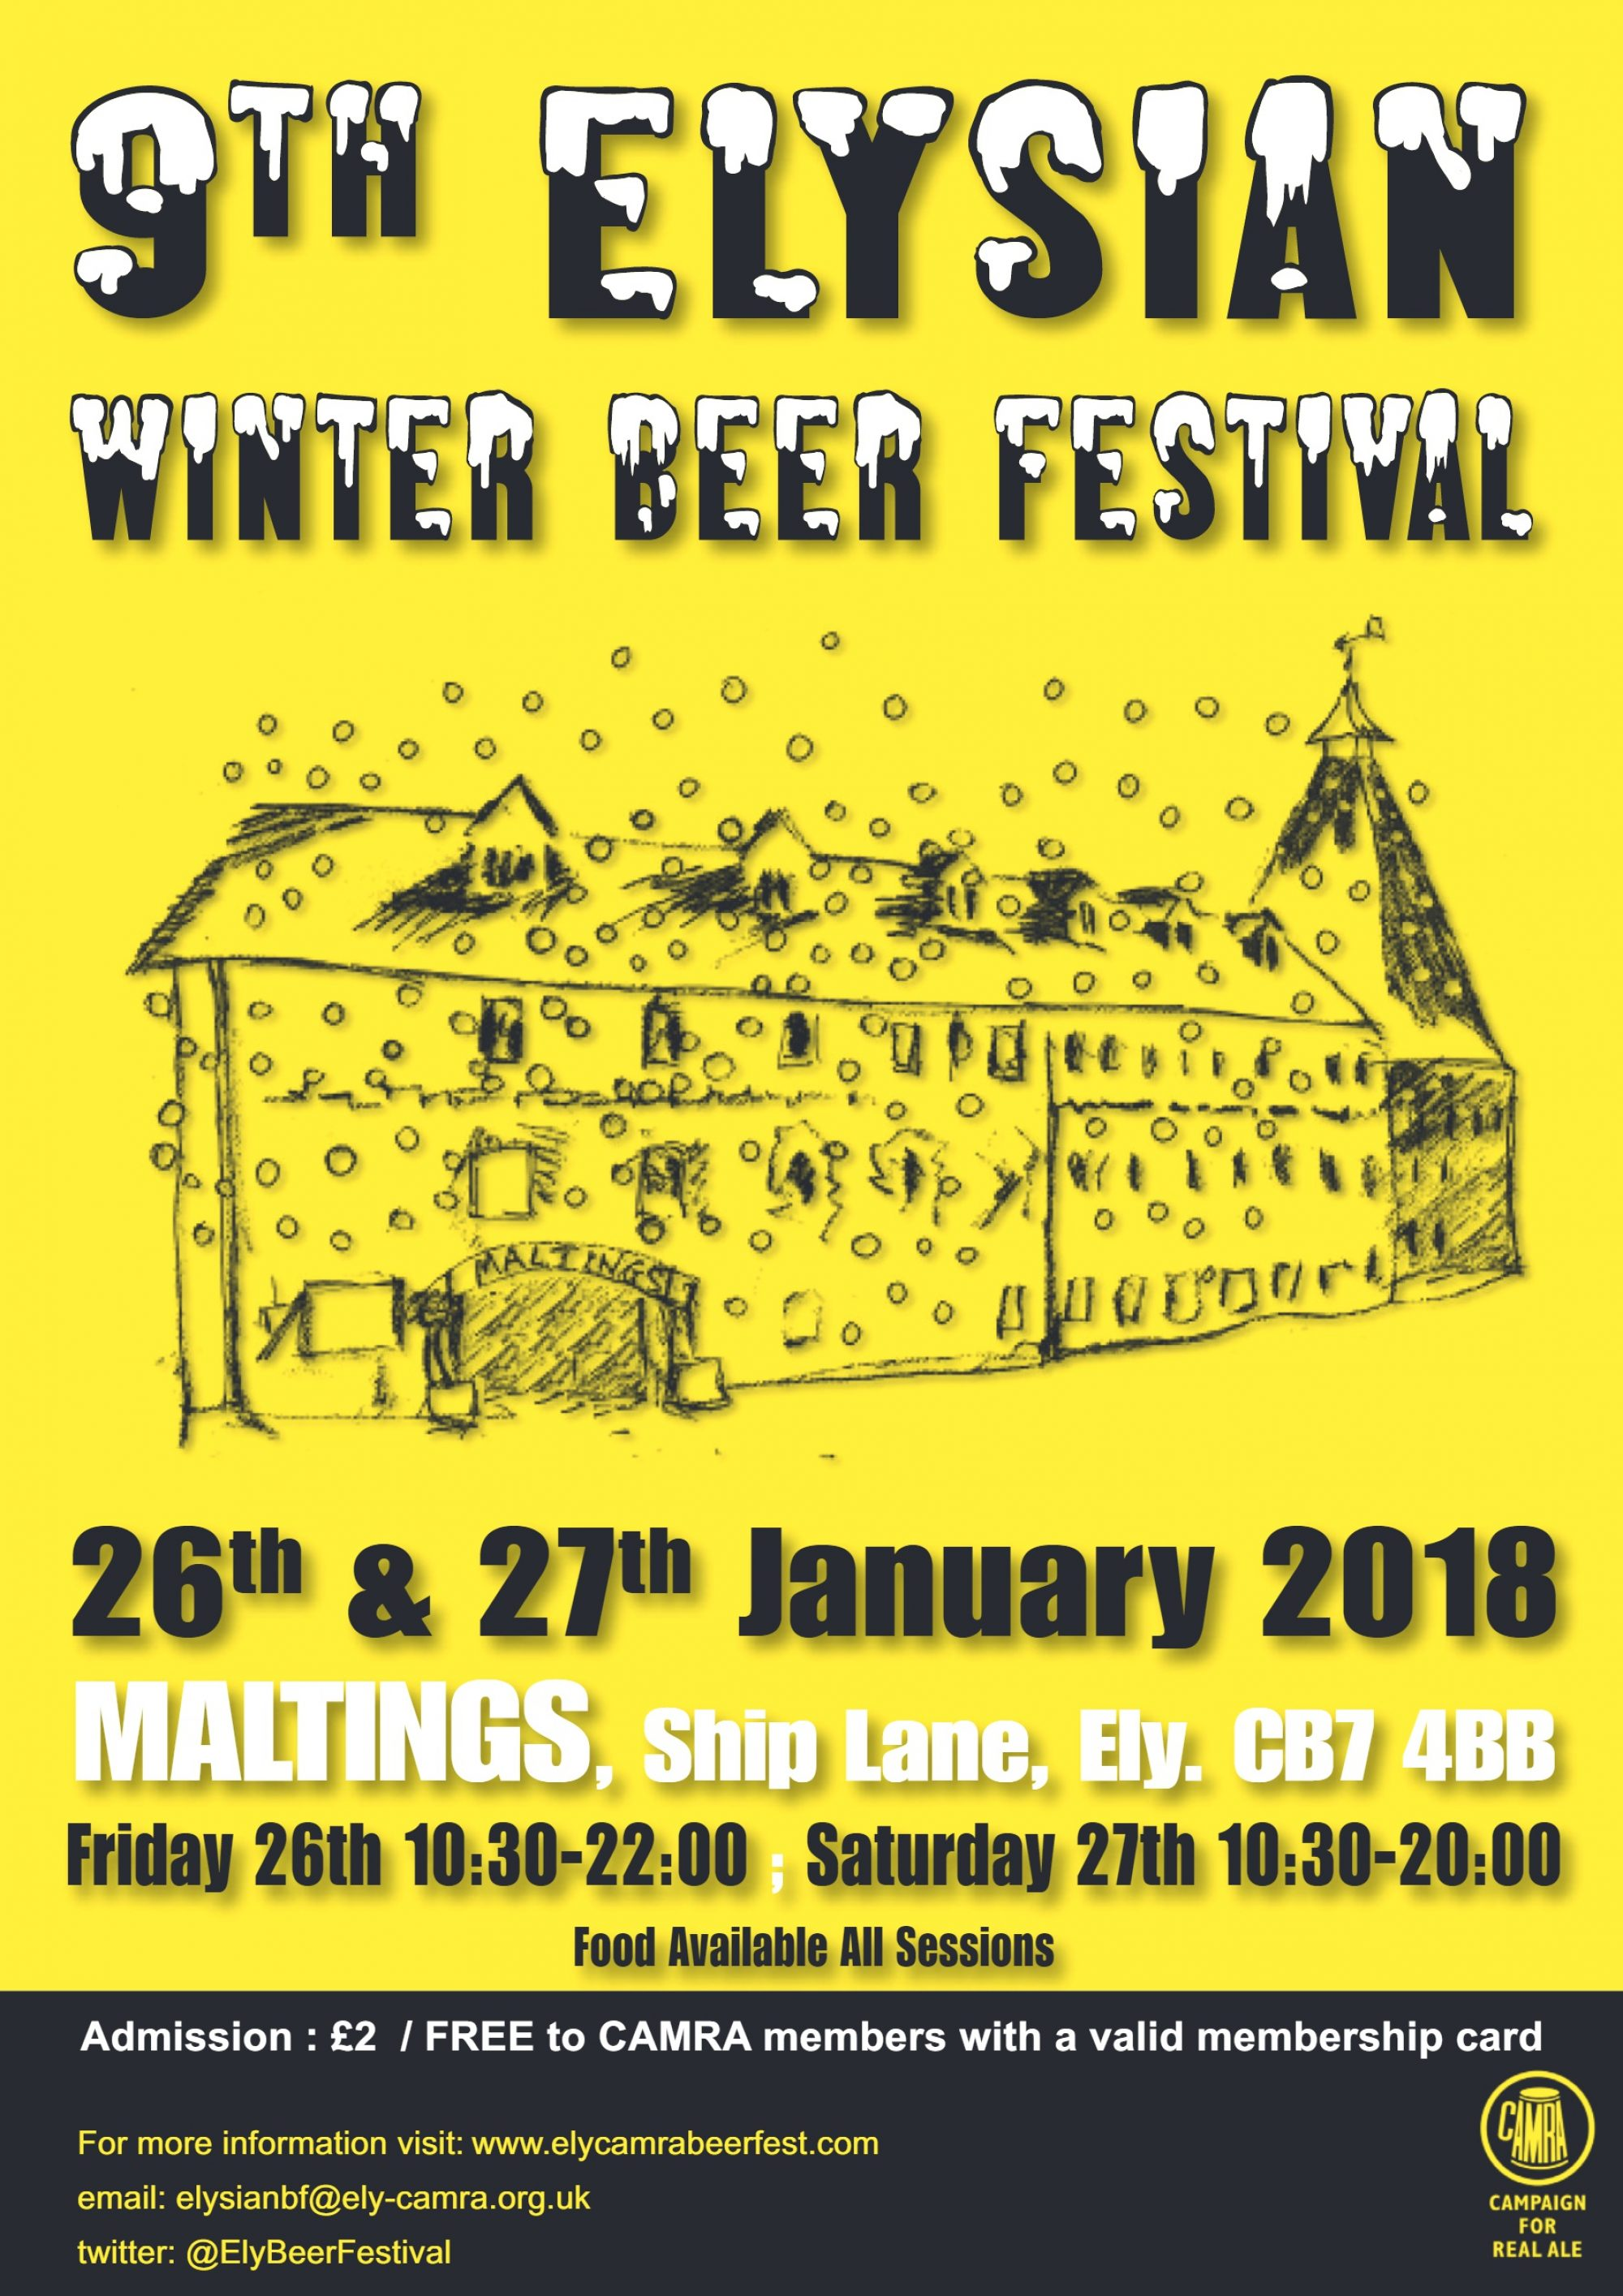 The 9th Elysian Winter Beer Festival